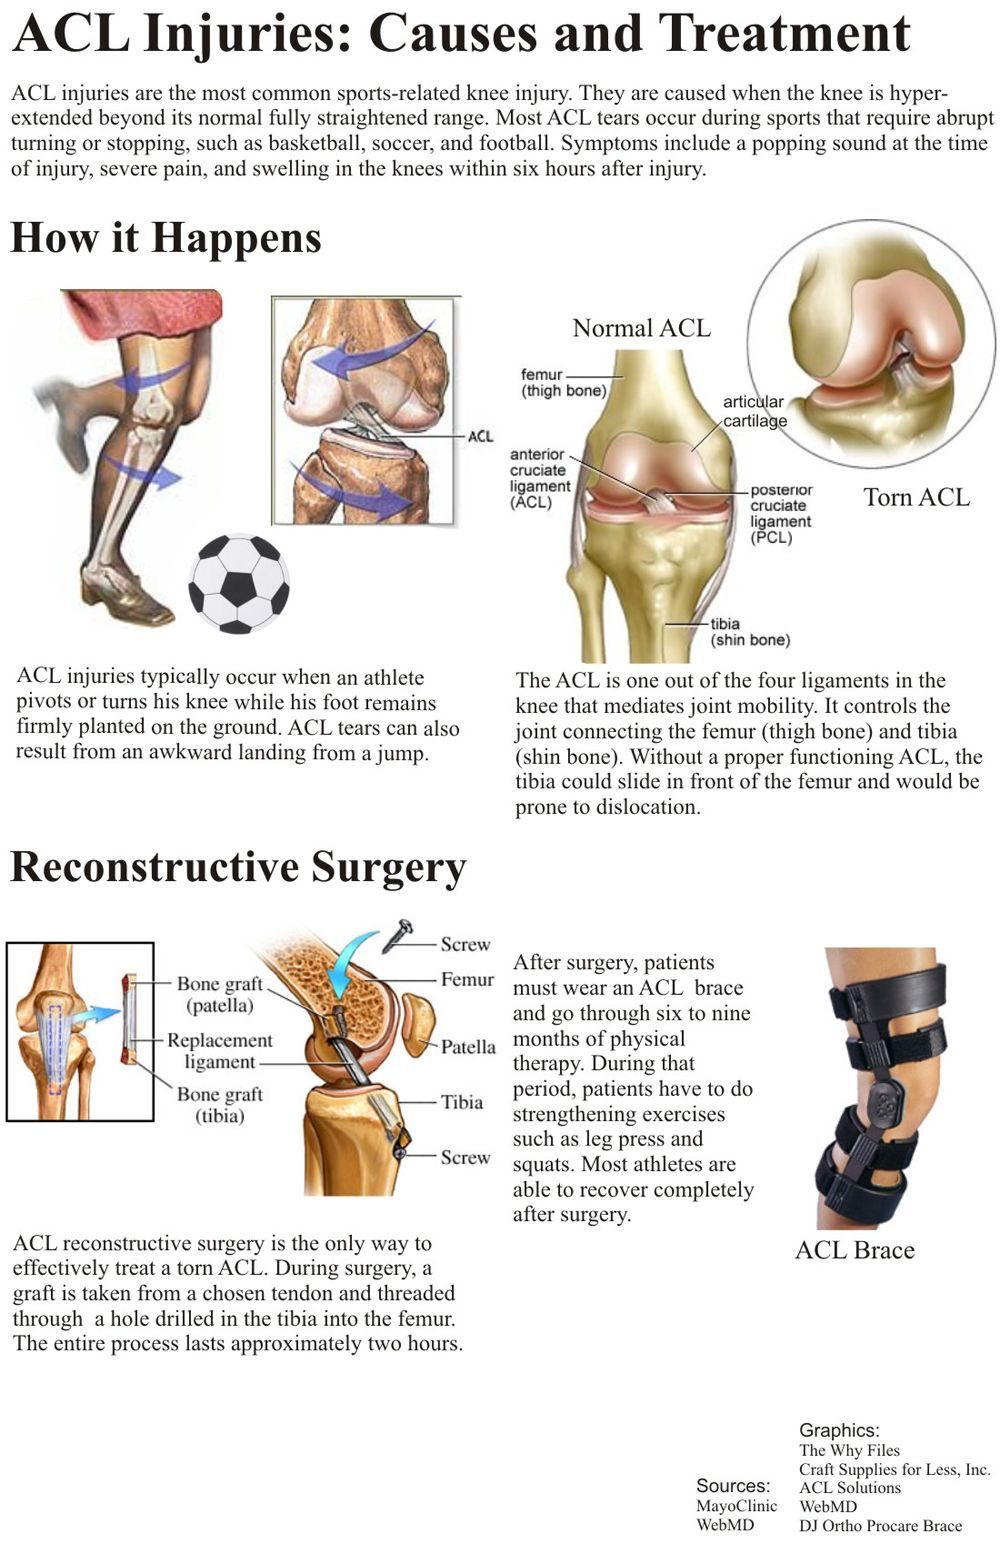 Pin by Stop Shin Splints on Sports Injuries | Pinterest | Acl, Knee ...